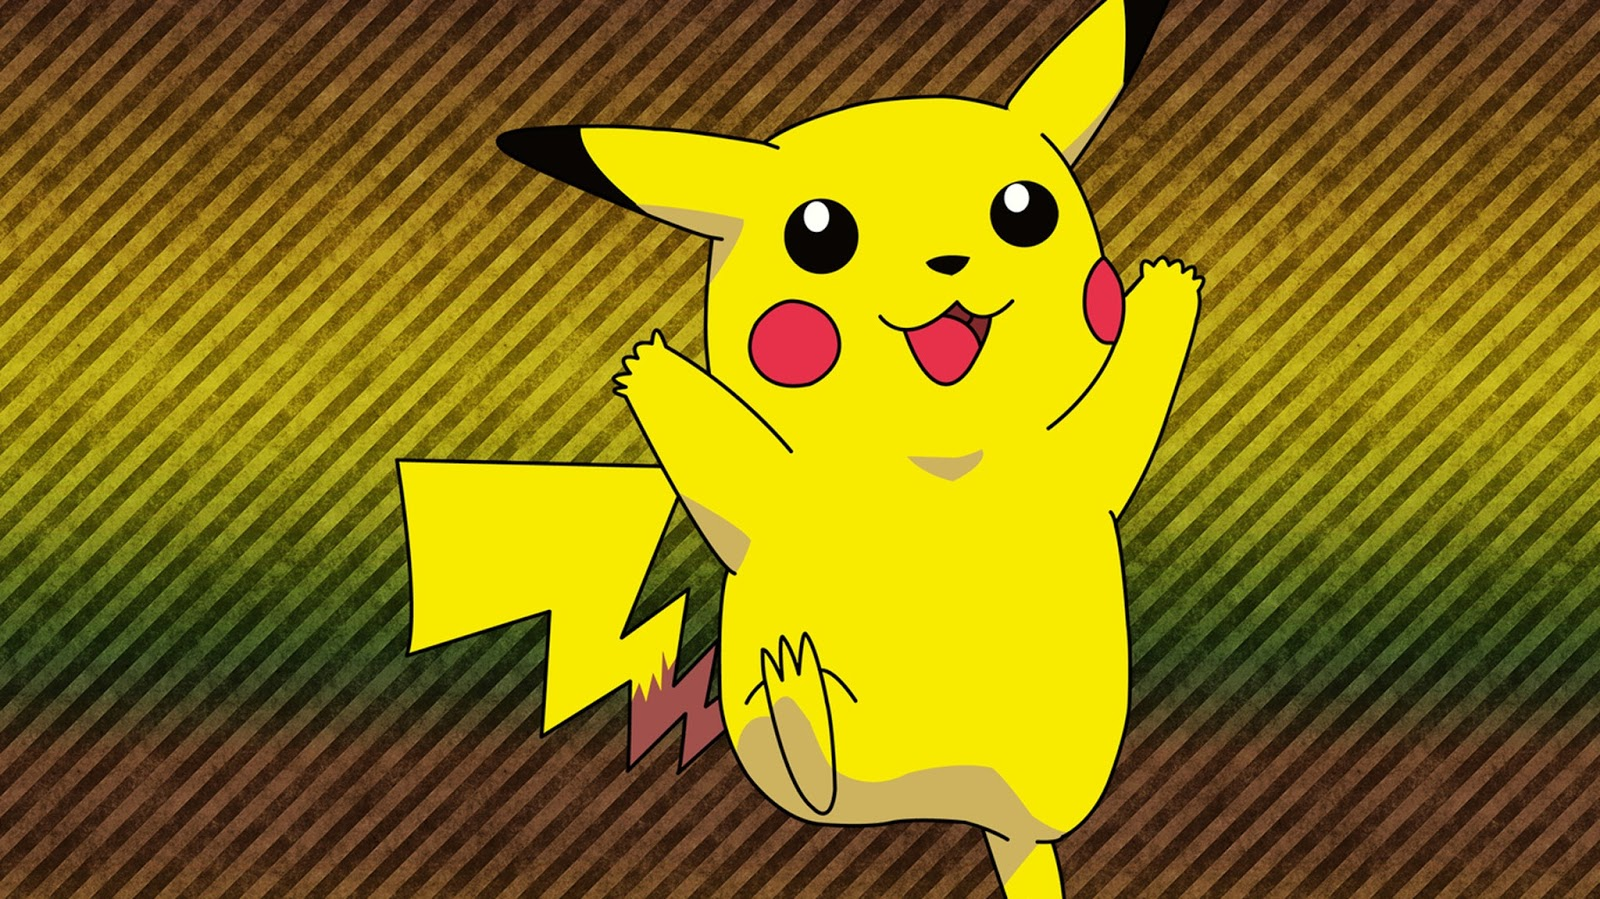 pikachu pokemon wallpaper - photo #20